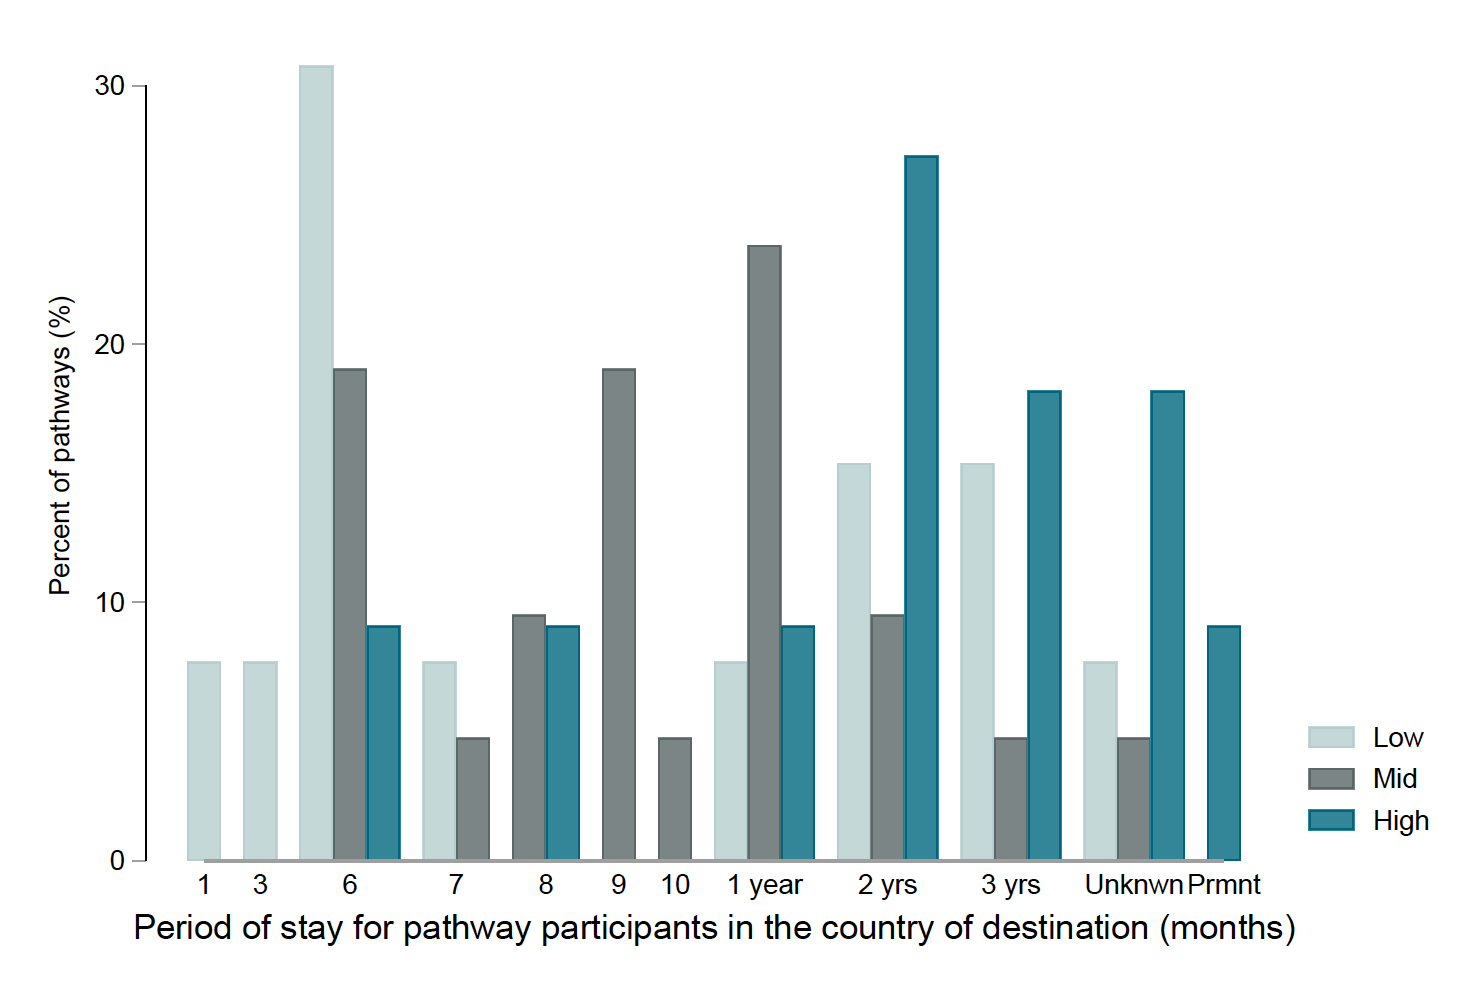 A bar chart showing that High-skill sectors tend to have access to longer-term pathways, often around 2-3 years